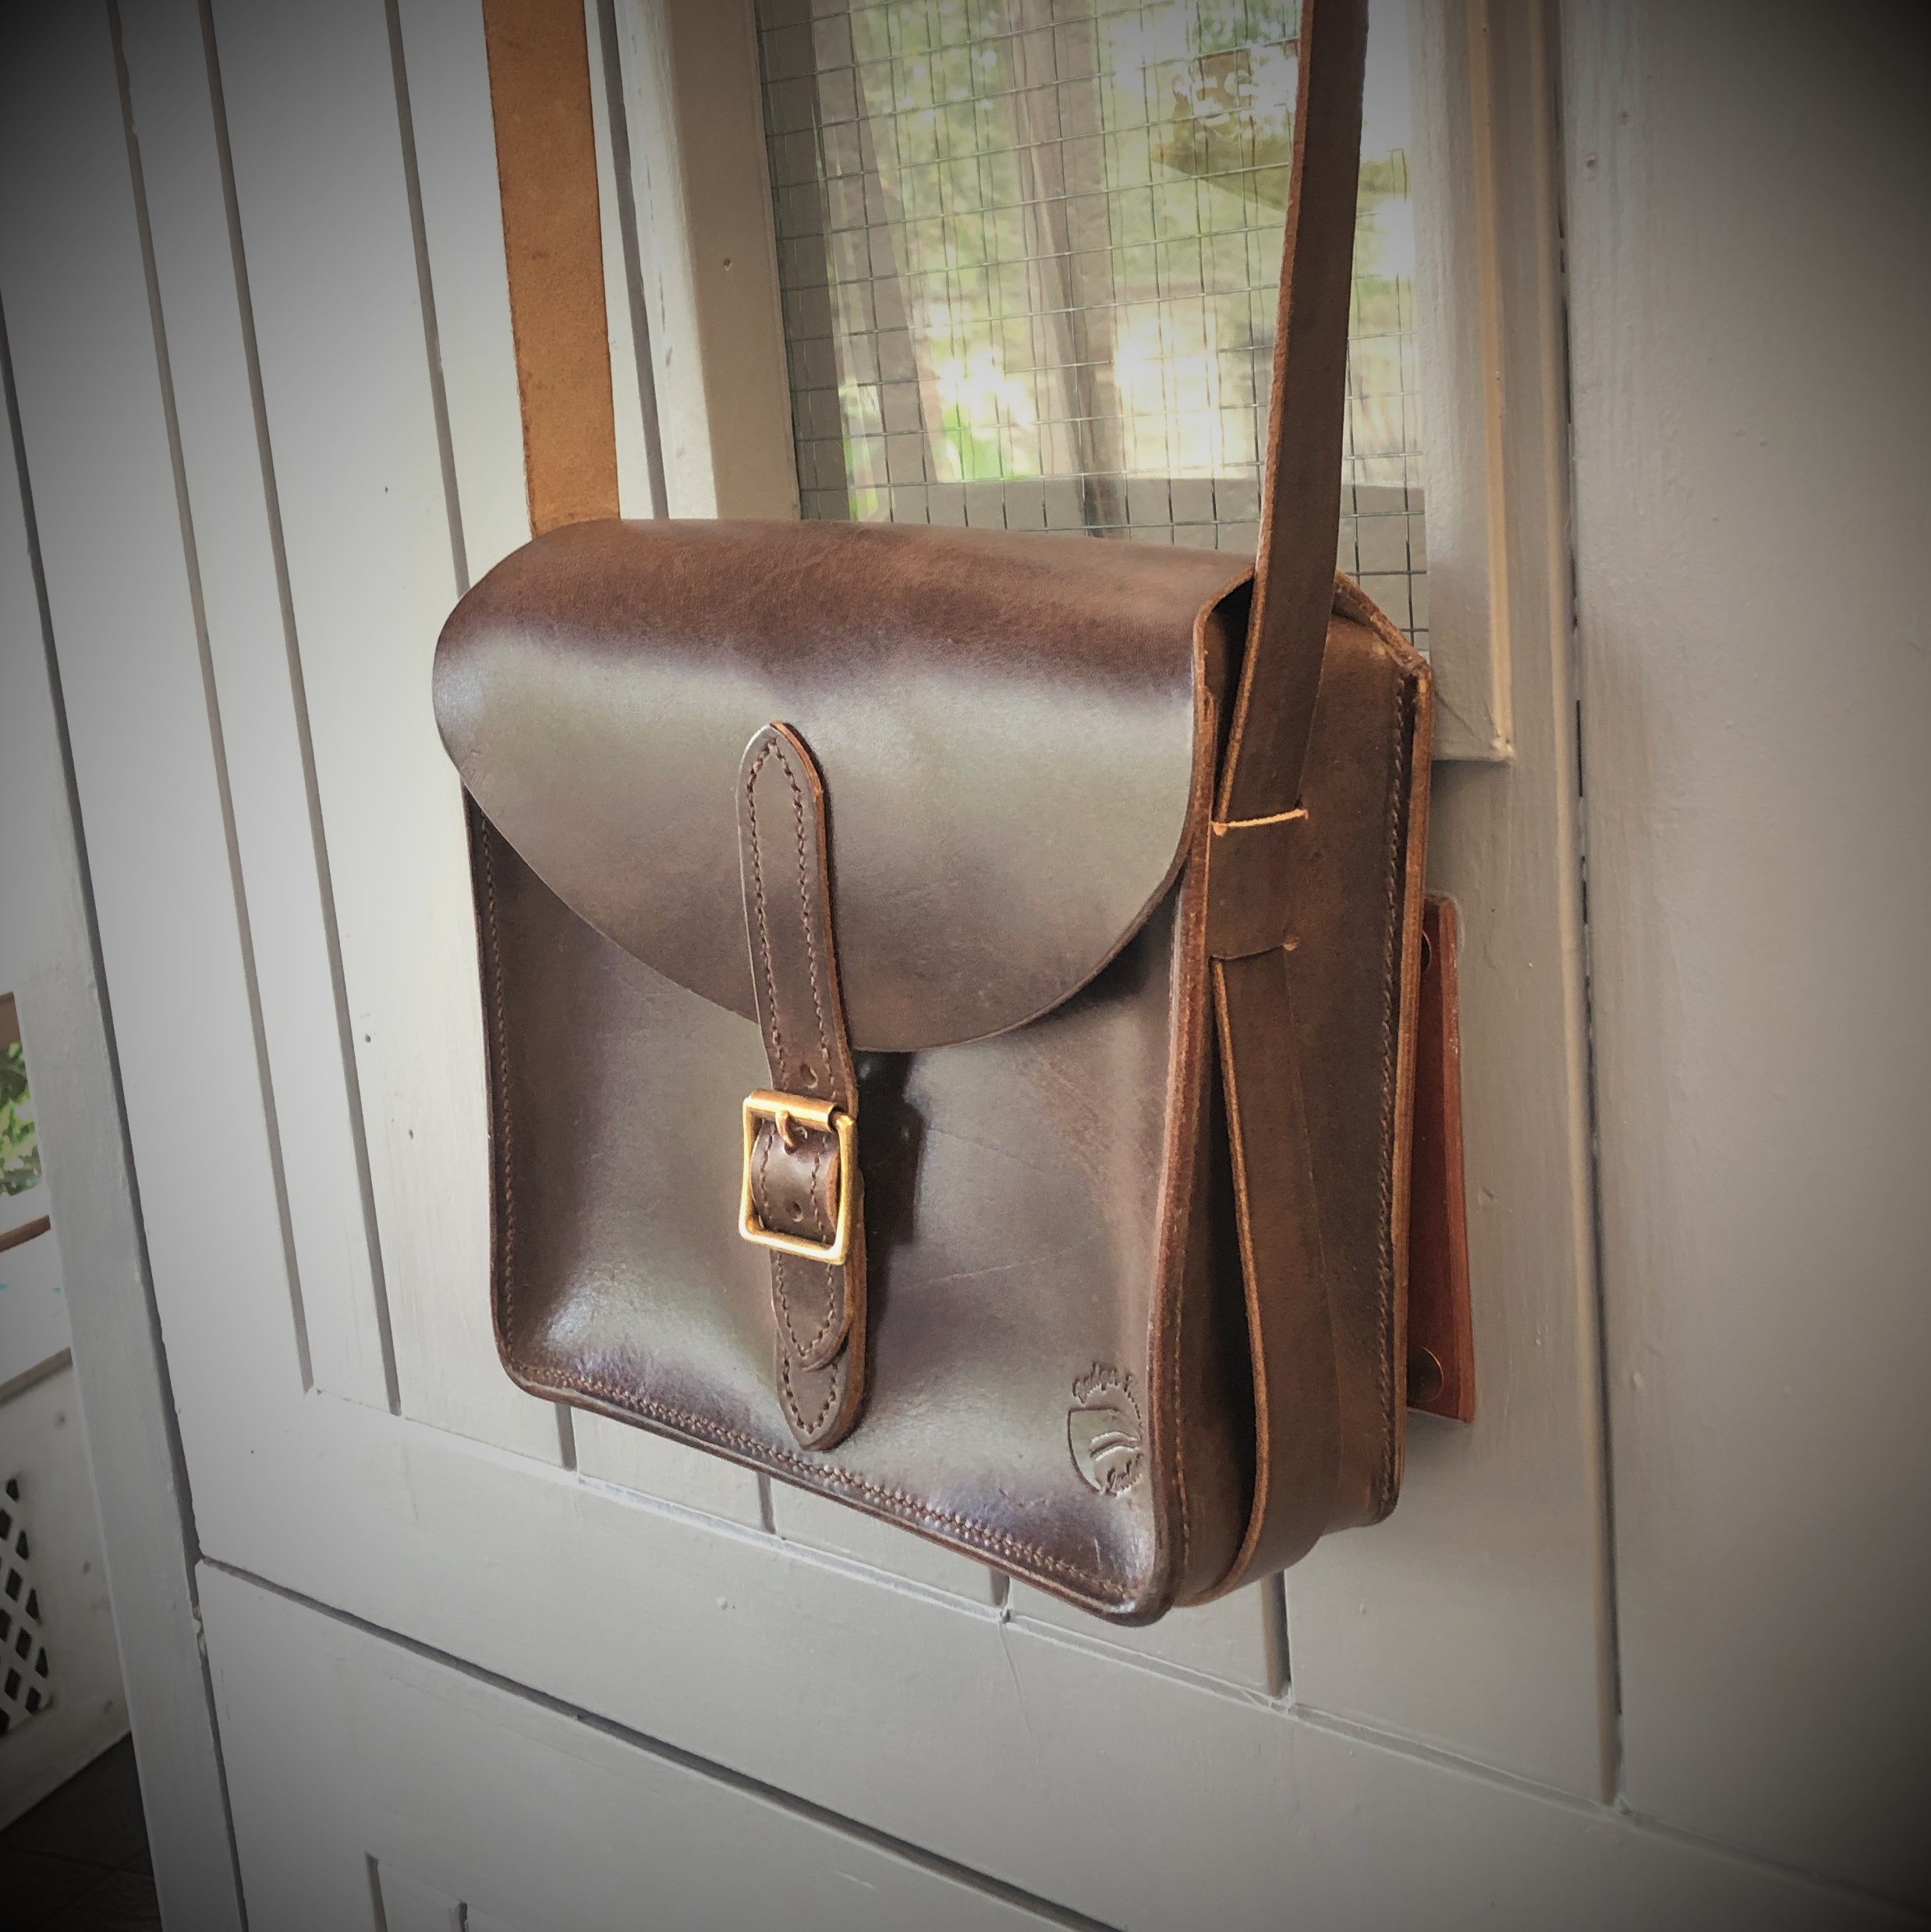 Boxy leather handbag